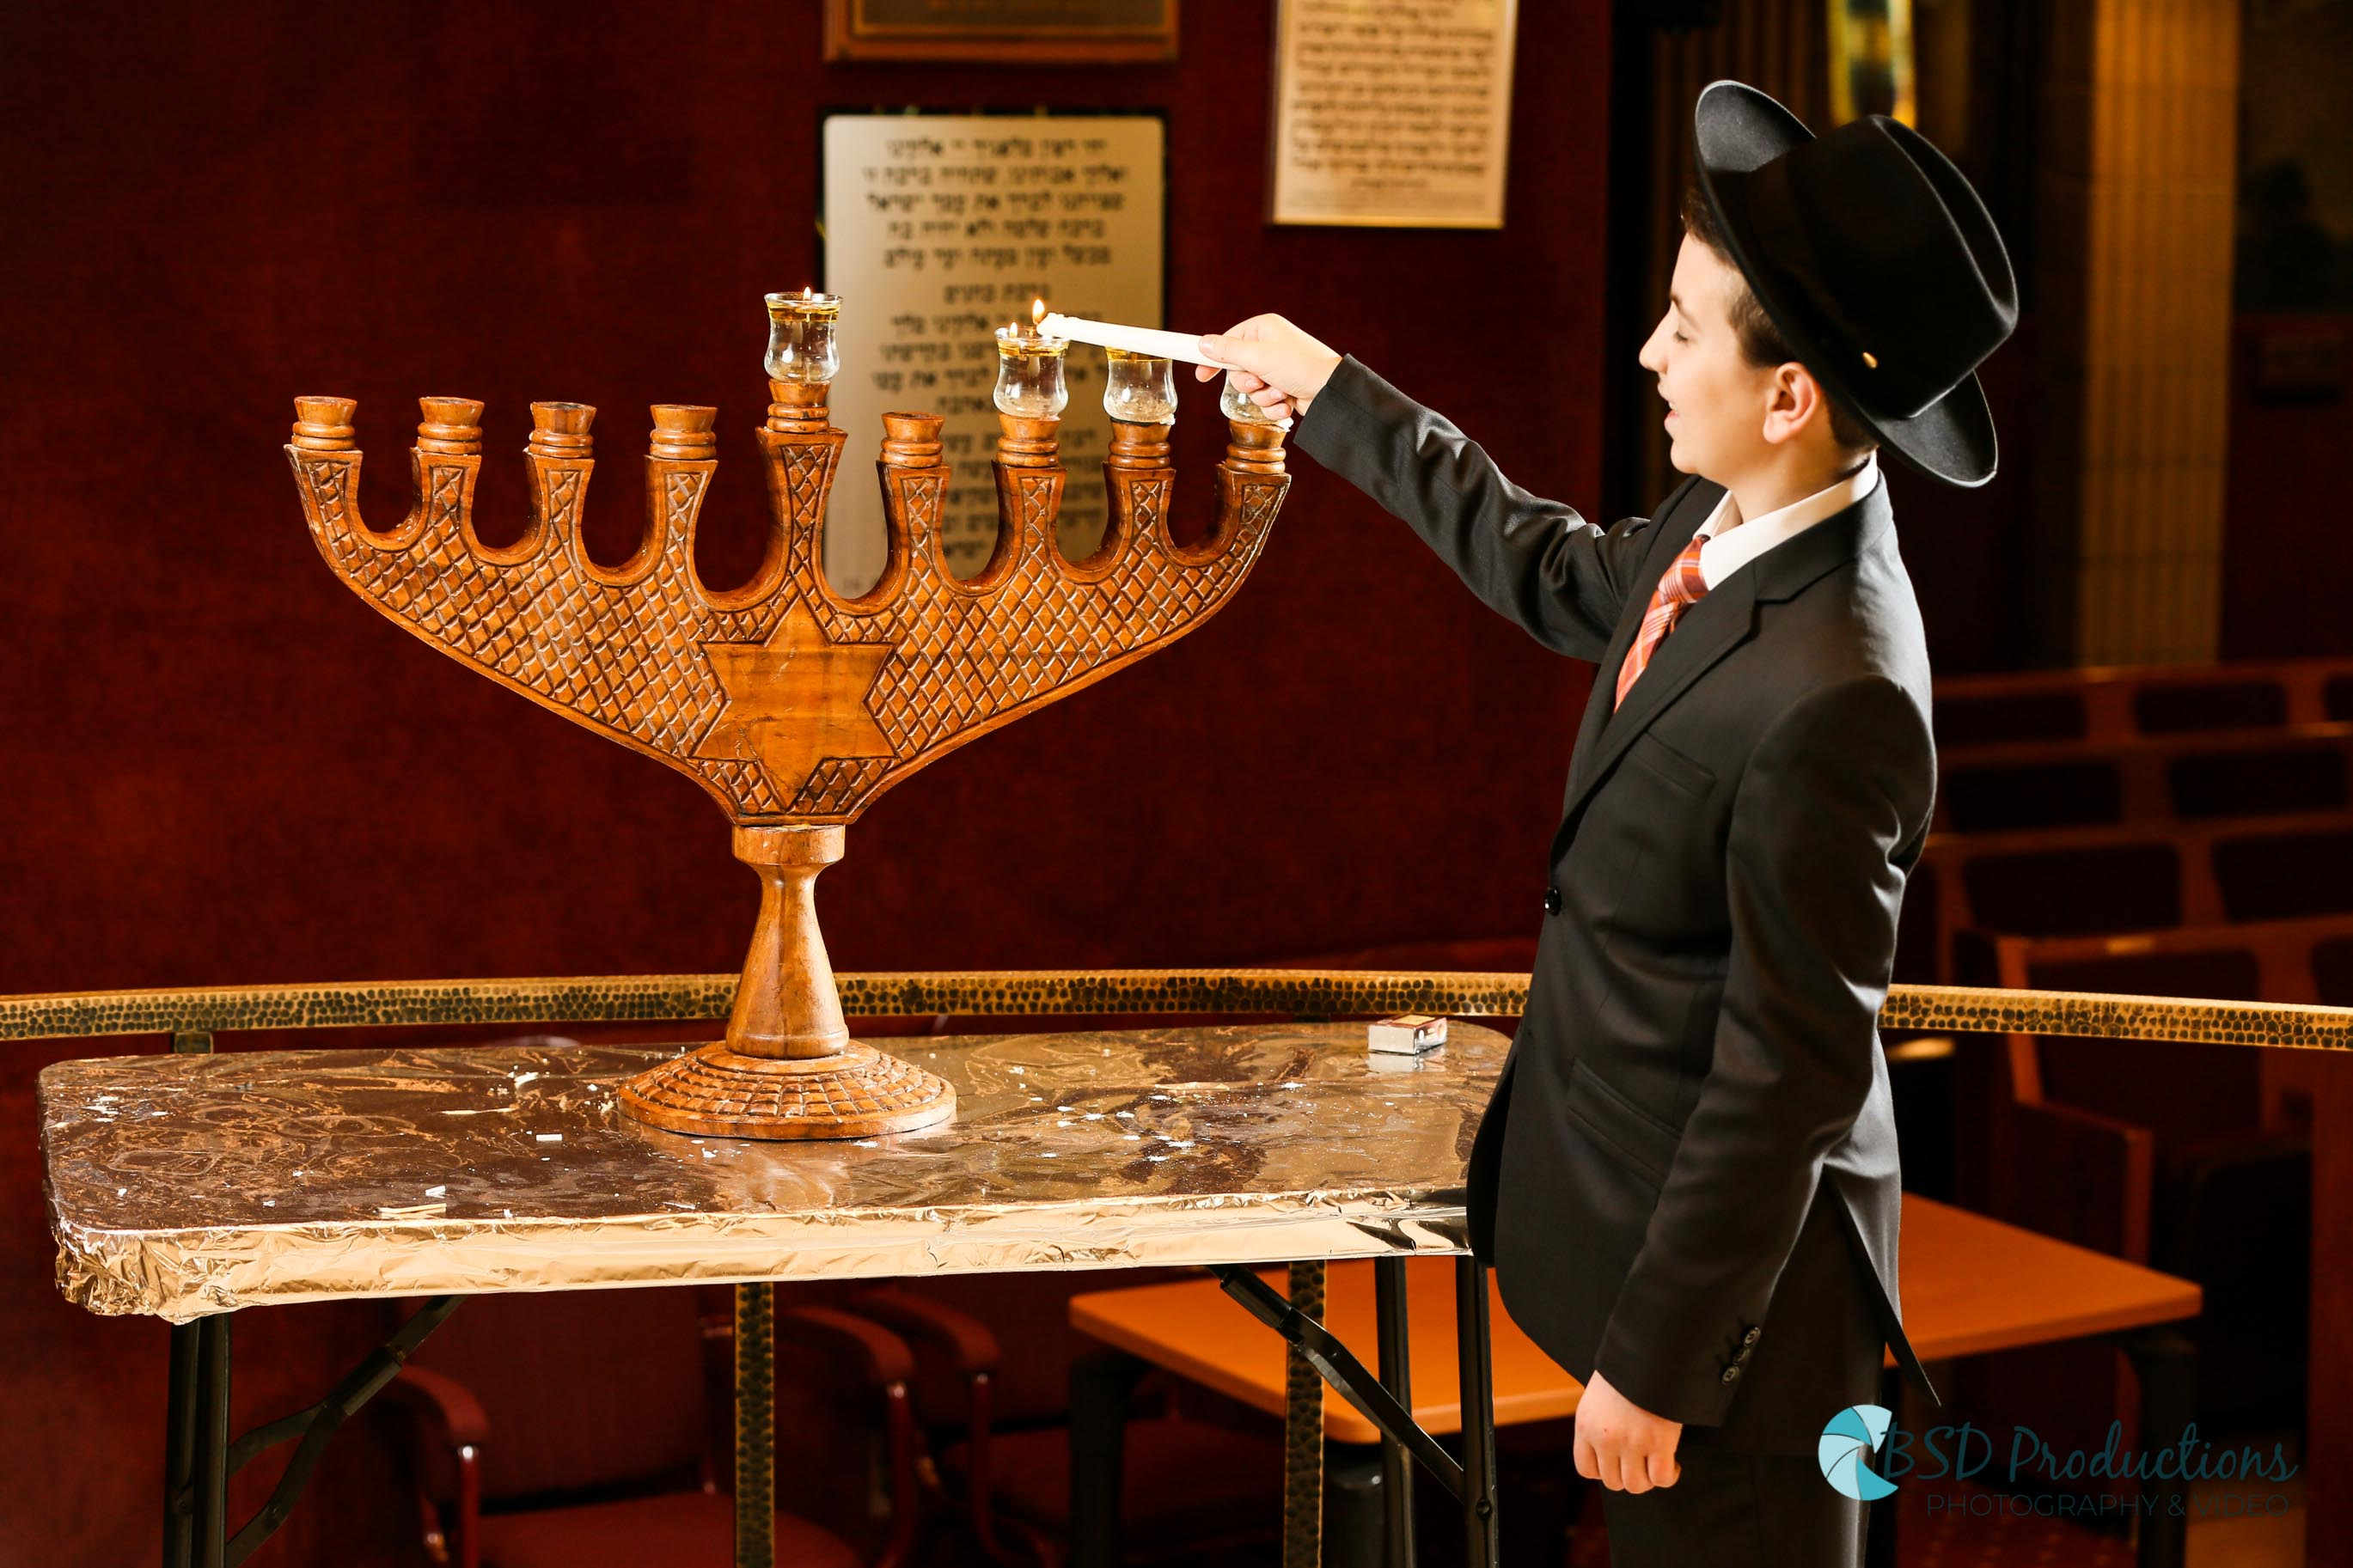 UH5A5174 Bar Mitzvah – BSD Prodcutions Photography